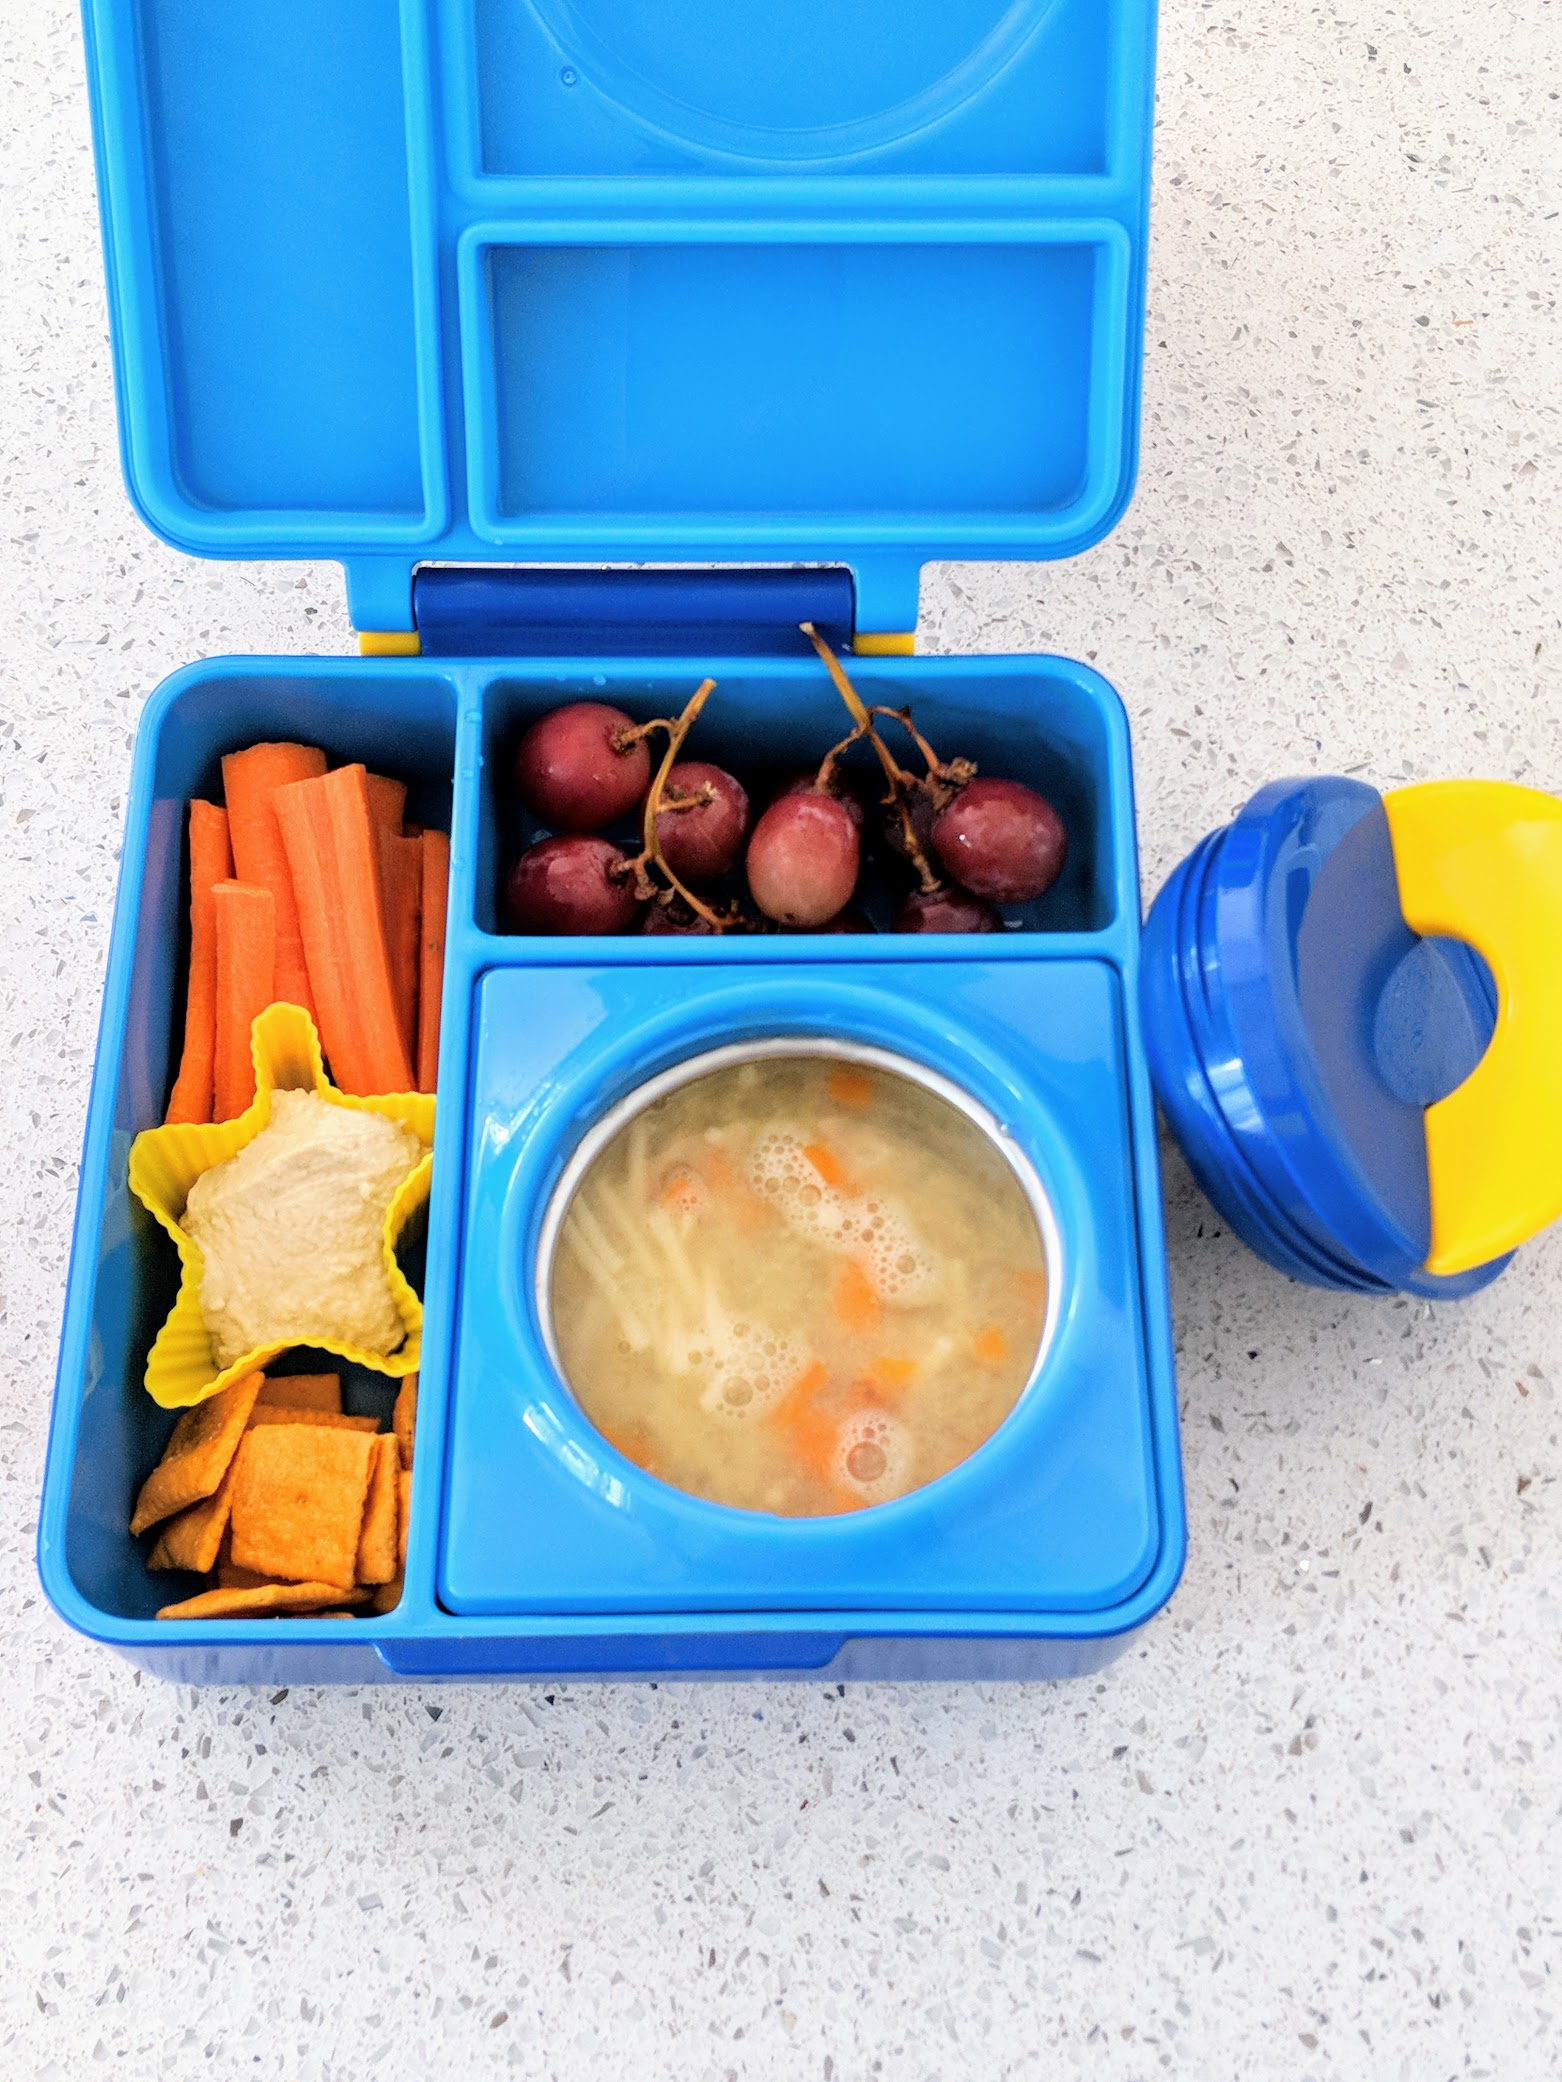 When Rowan and I went lunch box shopping he was very specific about wanting a bento box AND a thermos. I was thrilled when I found  this one by Omie at Well.ca . It wasn't cheap (although it was on sale when I bought it), but it's awesome. We're only one week in, but so far it's gotten rave reviews from Rowan.